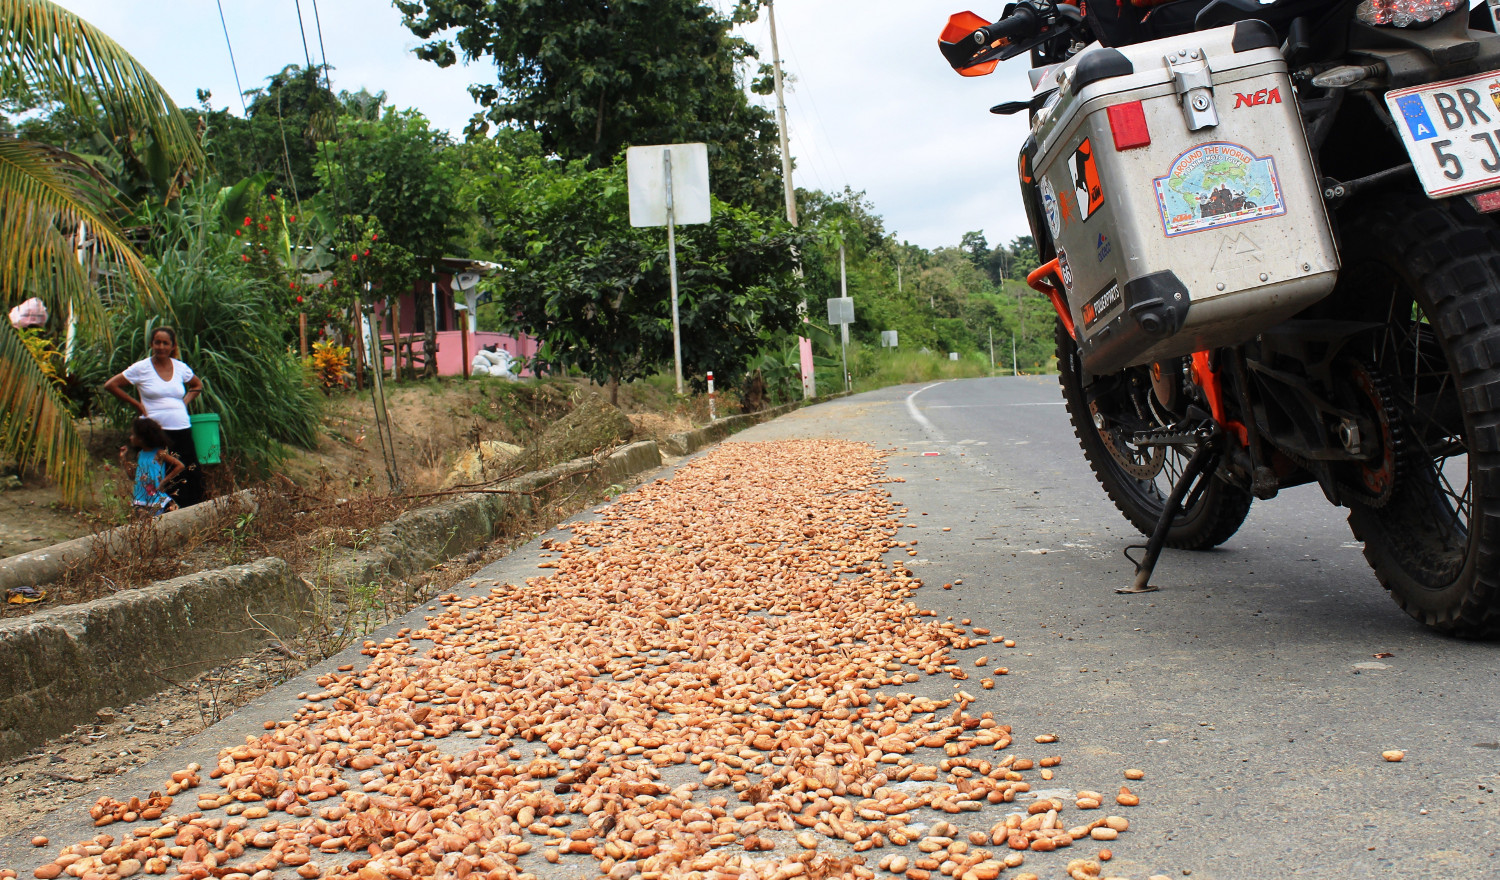 Kakao wird auch am Straßenrand zum Trocknen ausgelegt | Cocoa is even laid out by the side of the road to dry